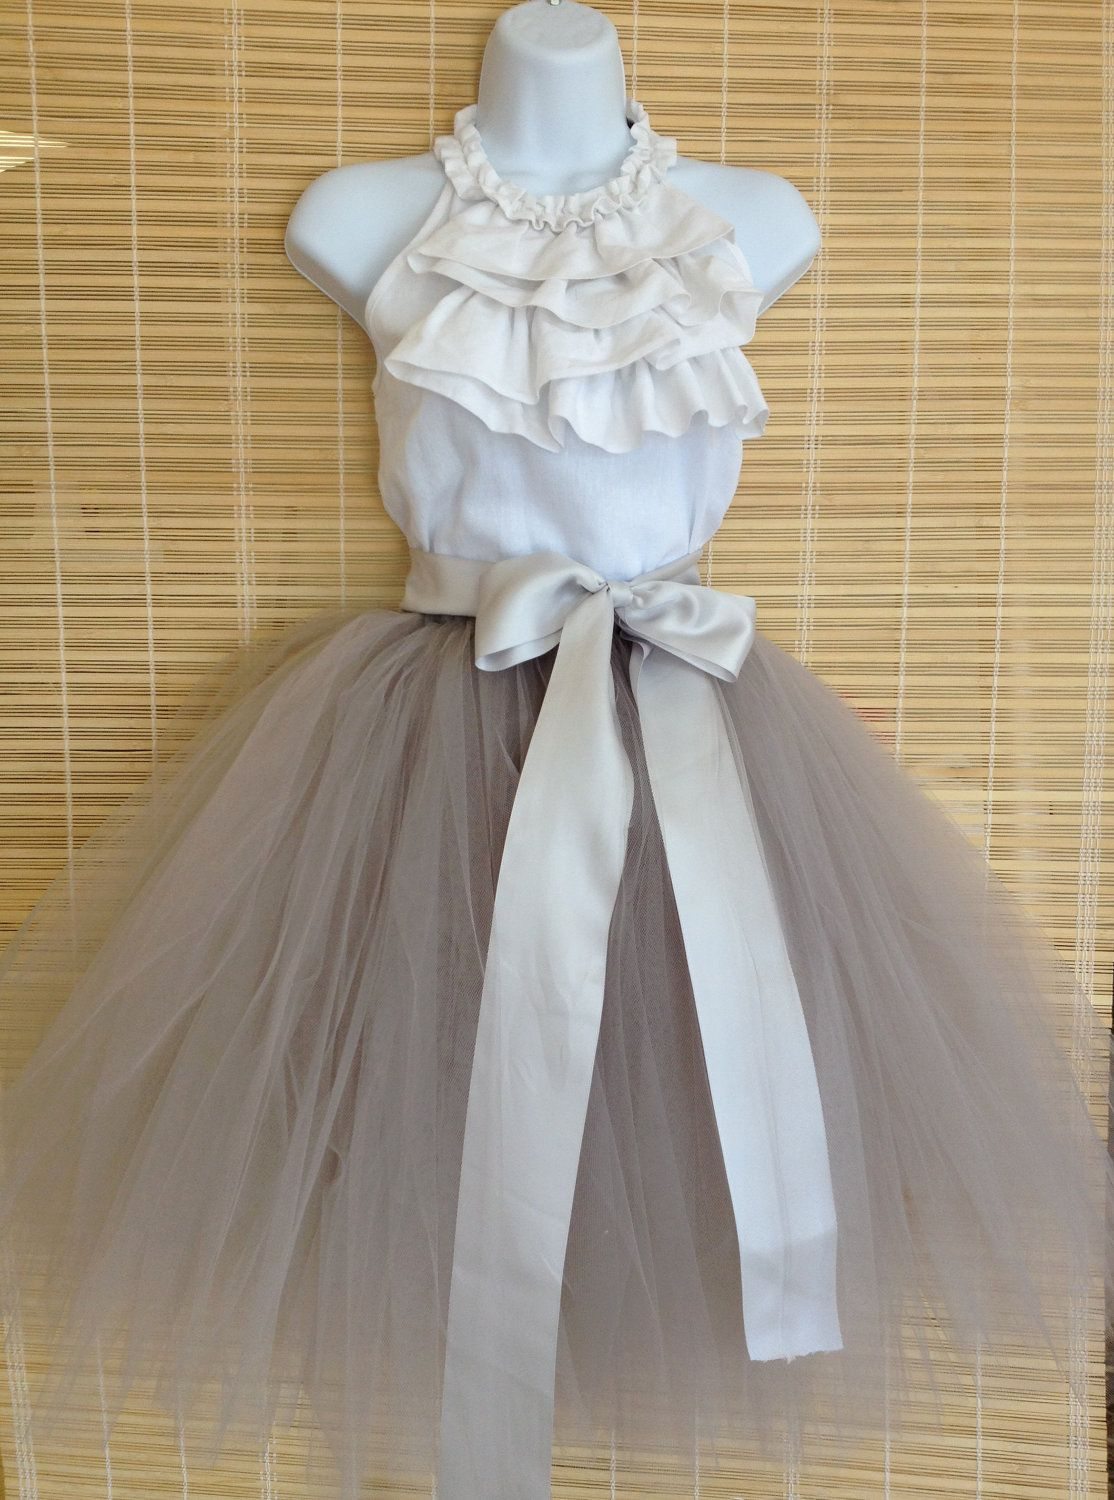 Tulle and ribbon and a simple halter ruffle top. Think I will try this but dont know if I want it long to the floor or right below the knee!!! Decisions!!!!